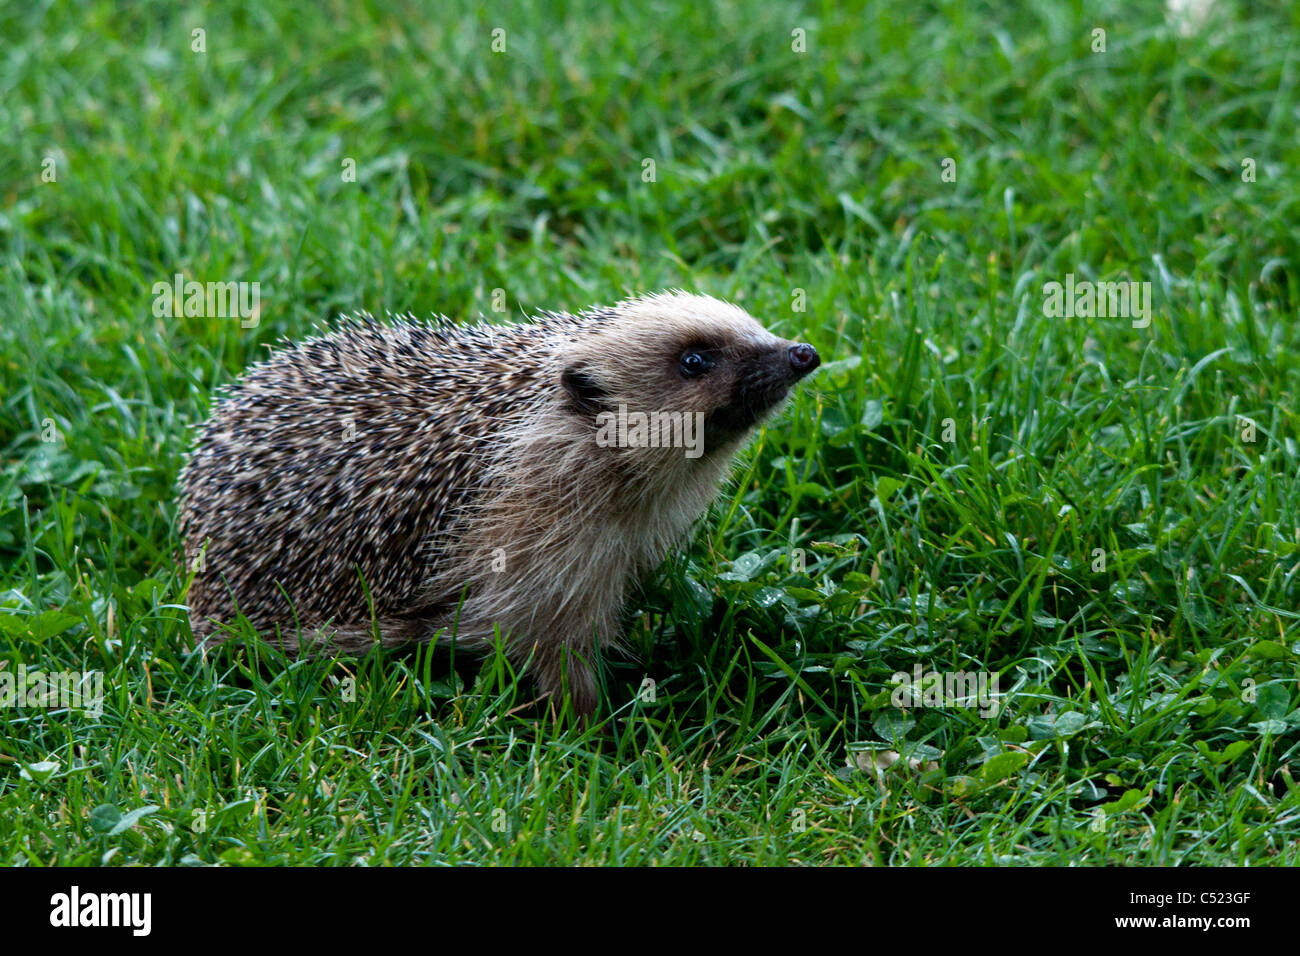 A Hedgehog looking for food at the British Wildlife Center - Stock Image